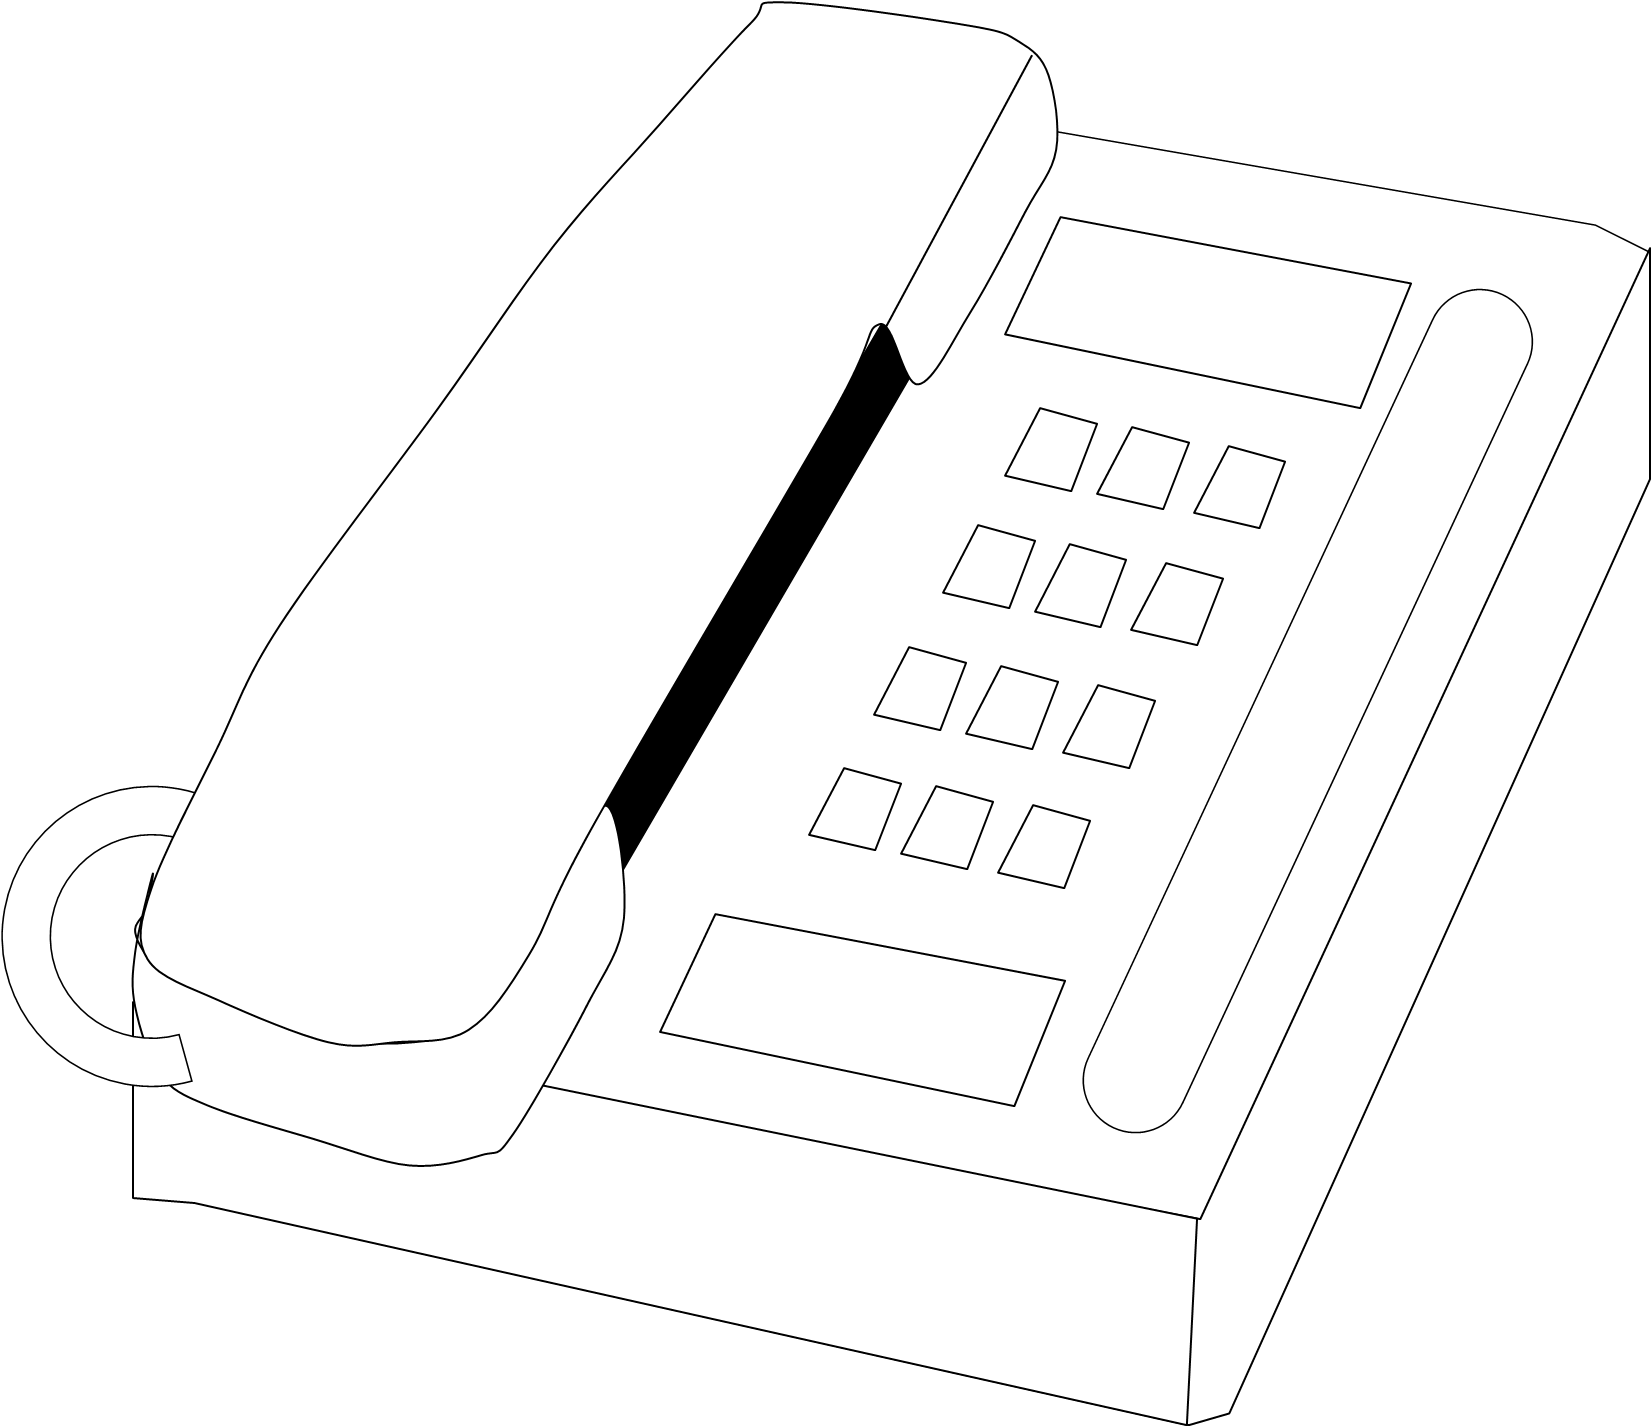 Bw free images at. Telephone clipart office phone